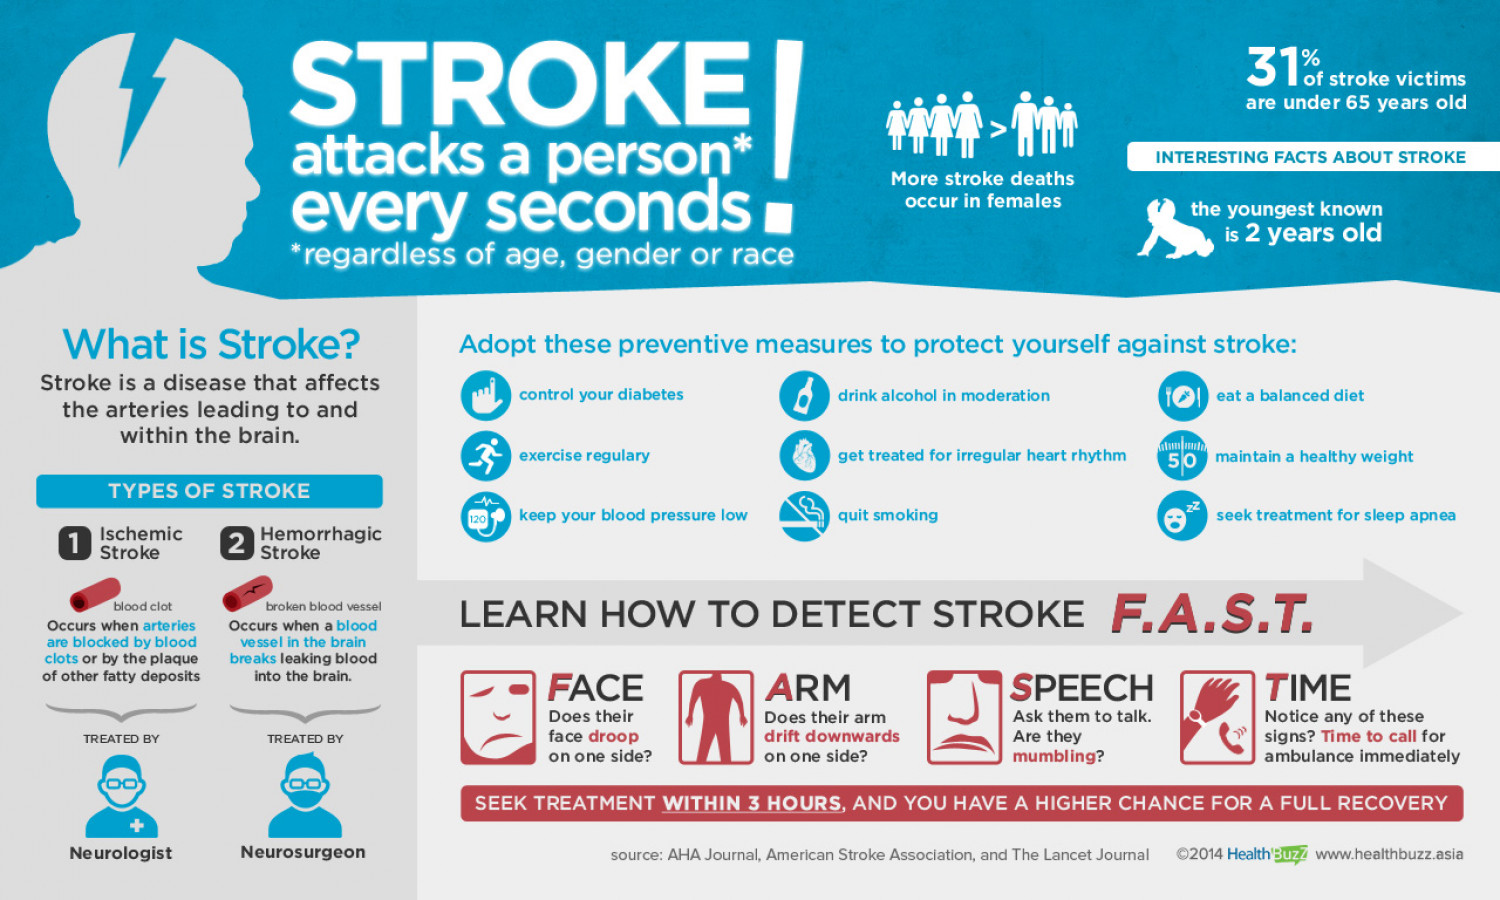 Stroke Attacks a Person Every Seconds! Infographic